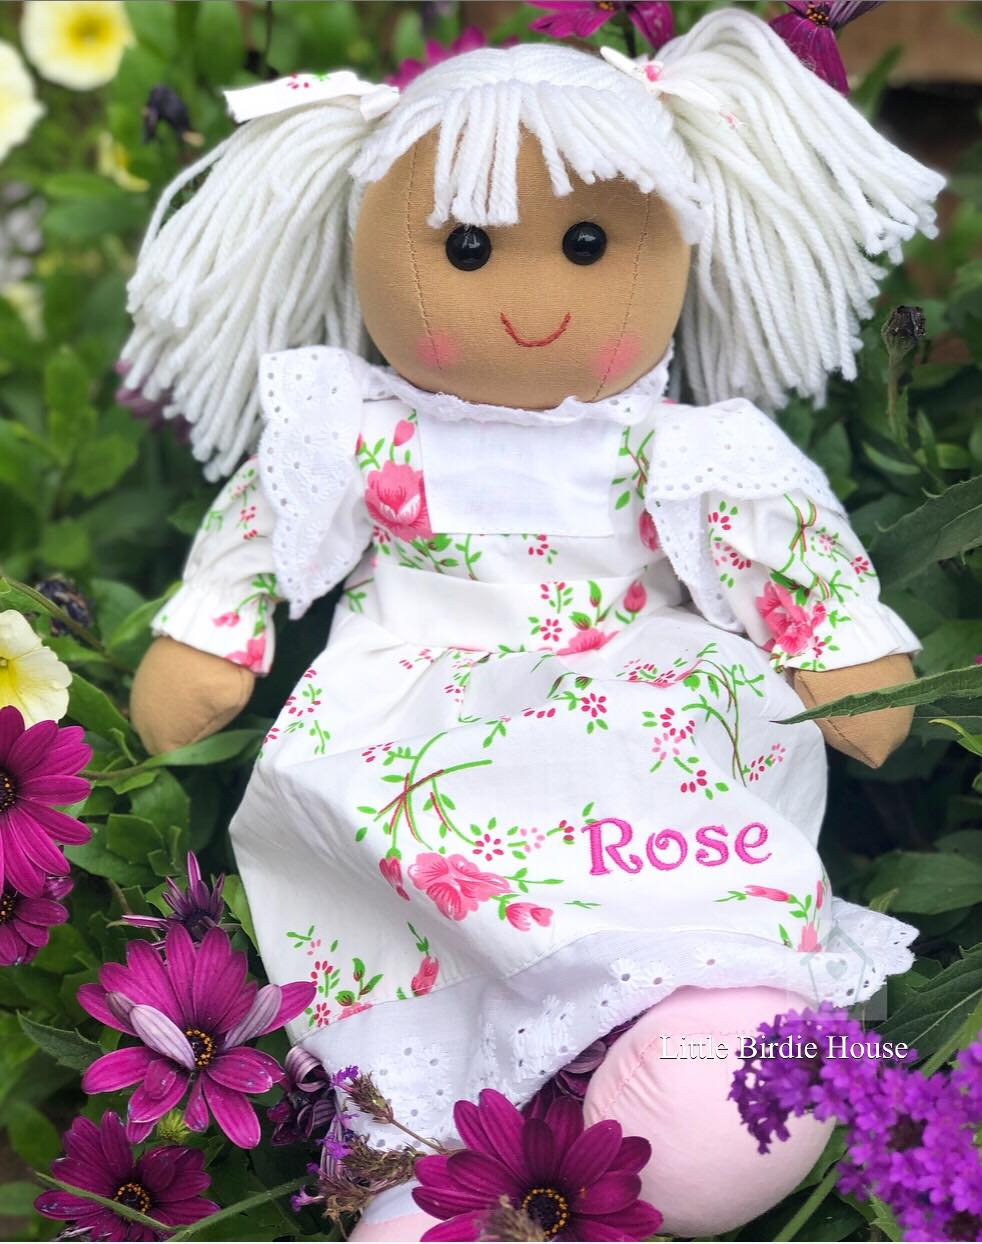 Rosie Personalised Rag Doll